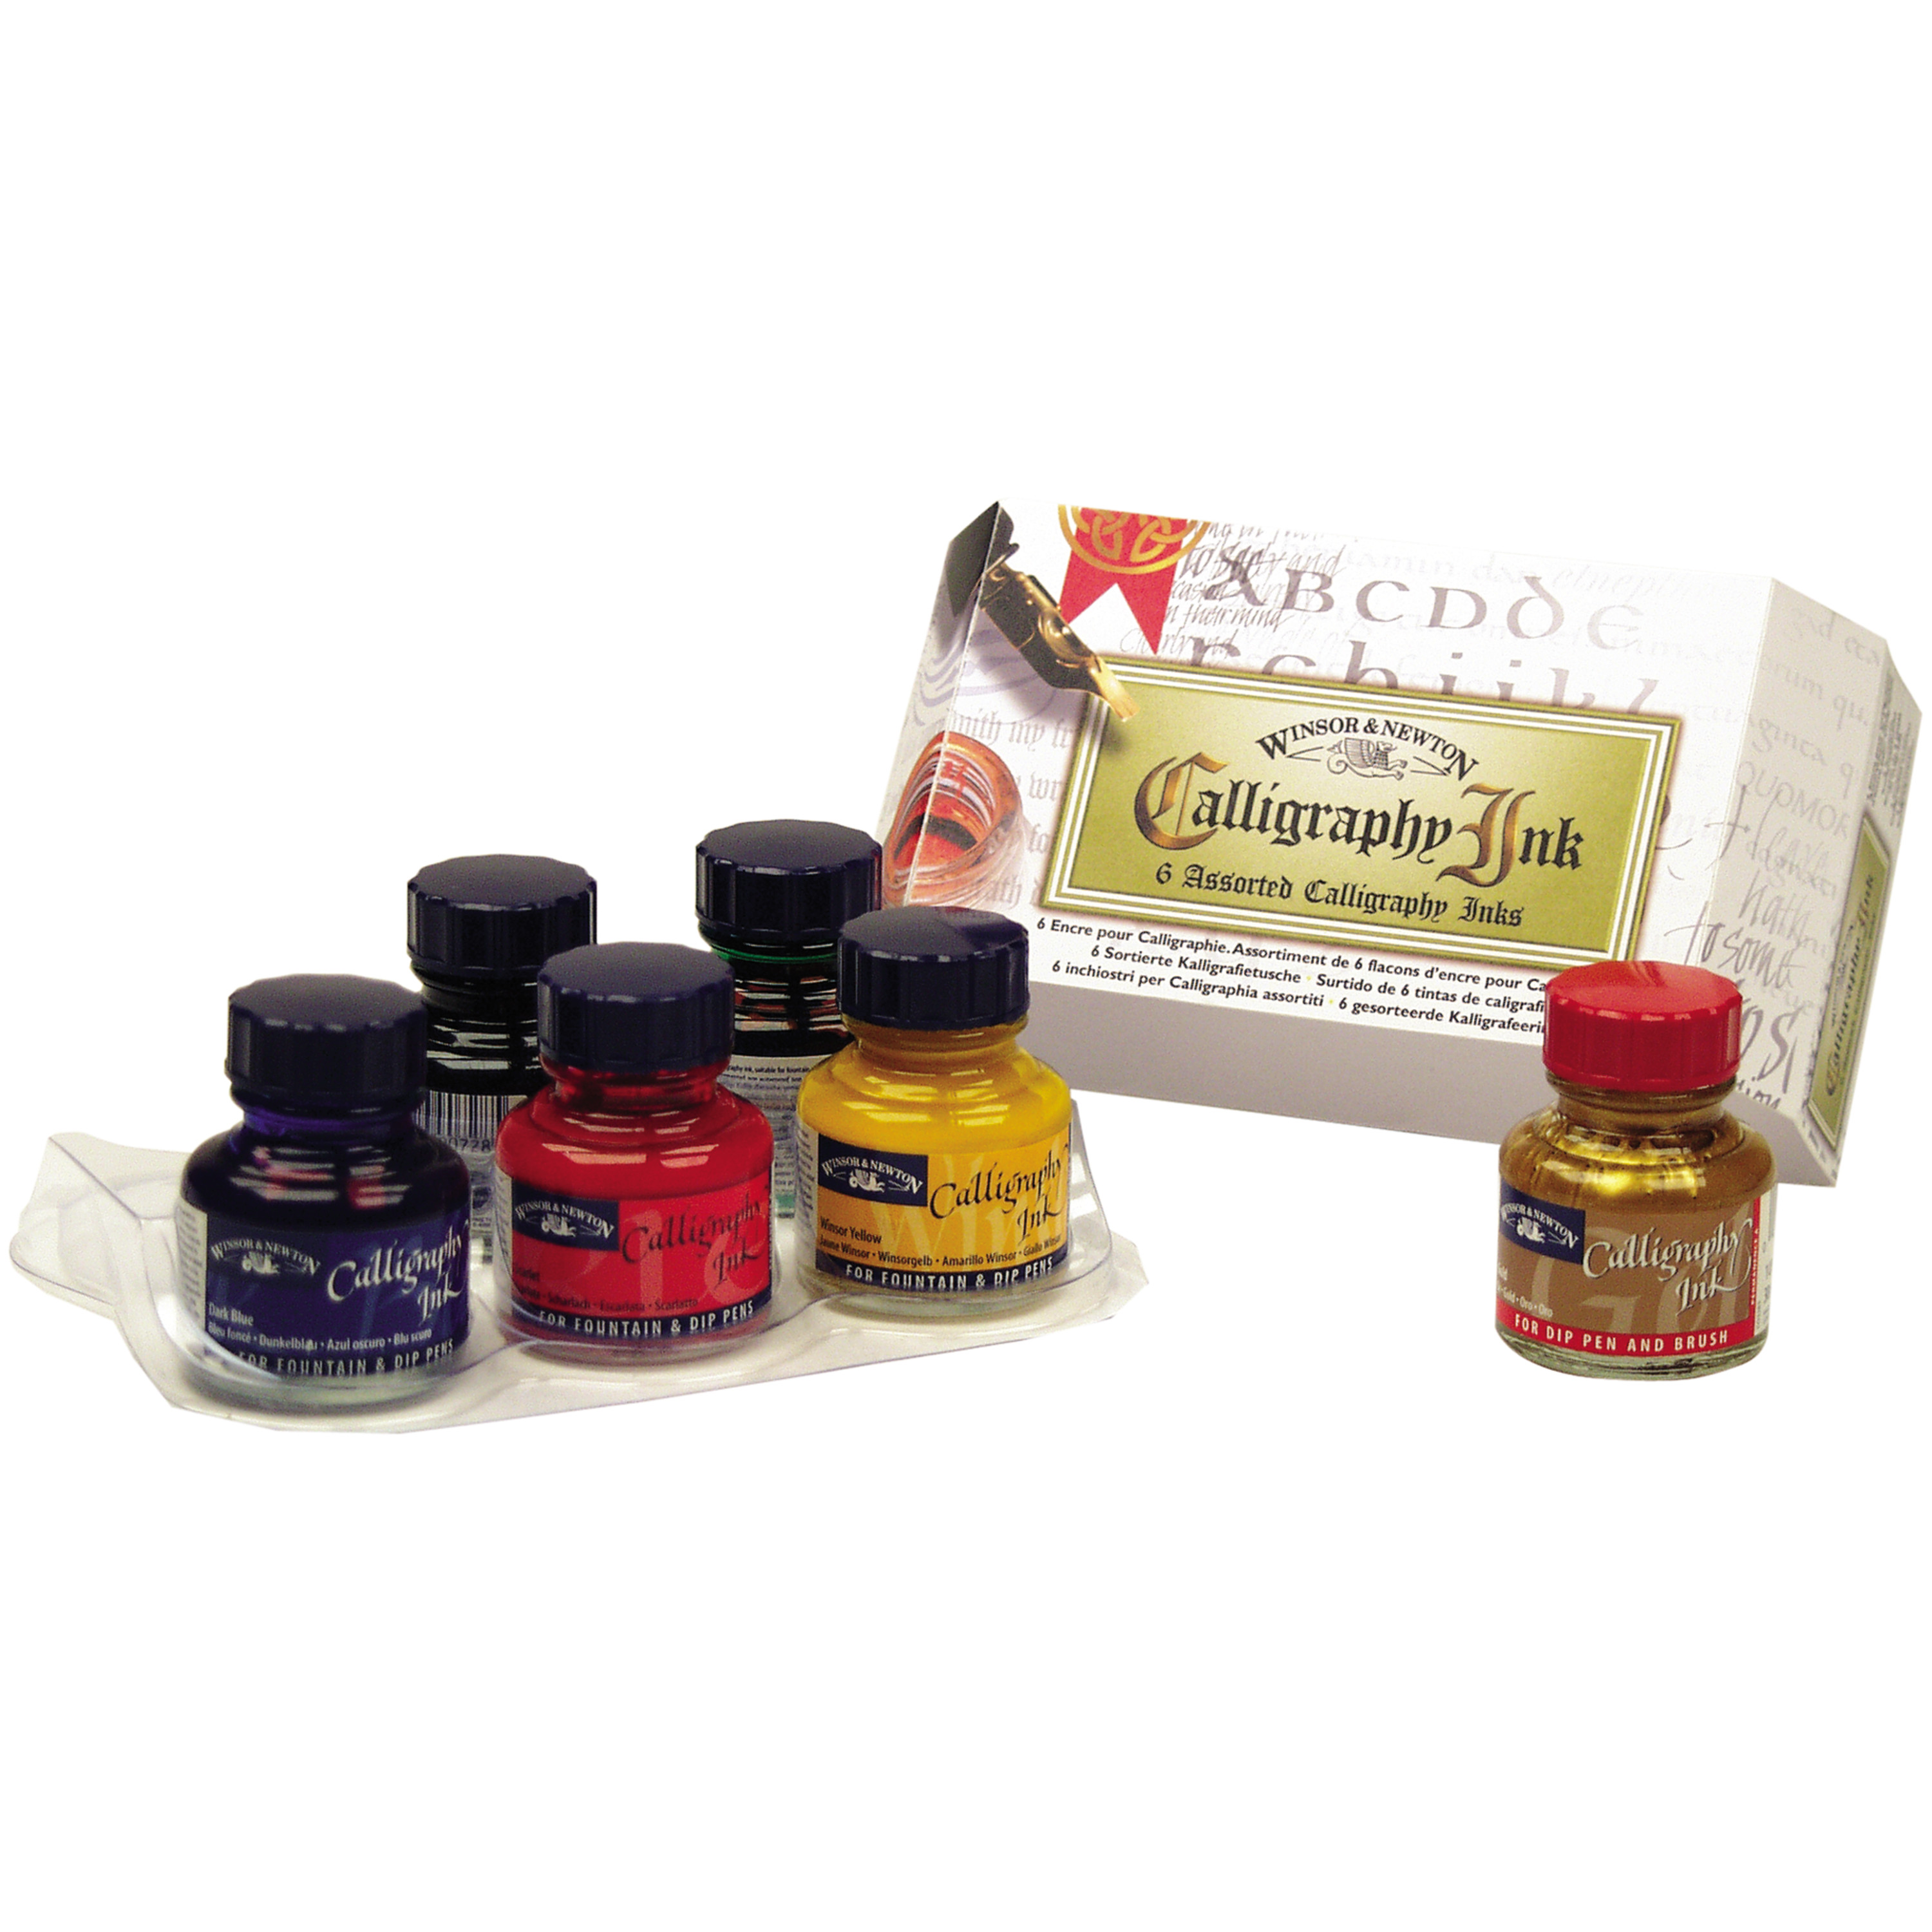 Winsor & Newton Calligraphy Ink, Introductory Set